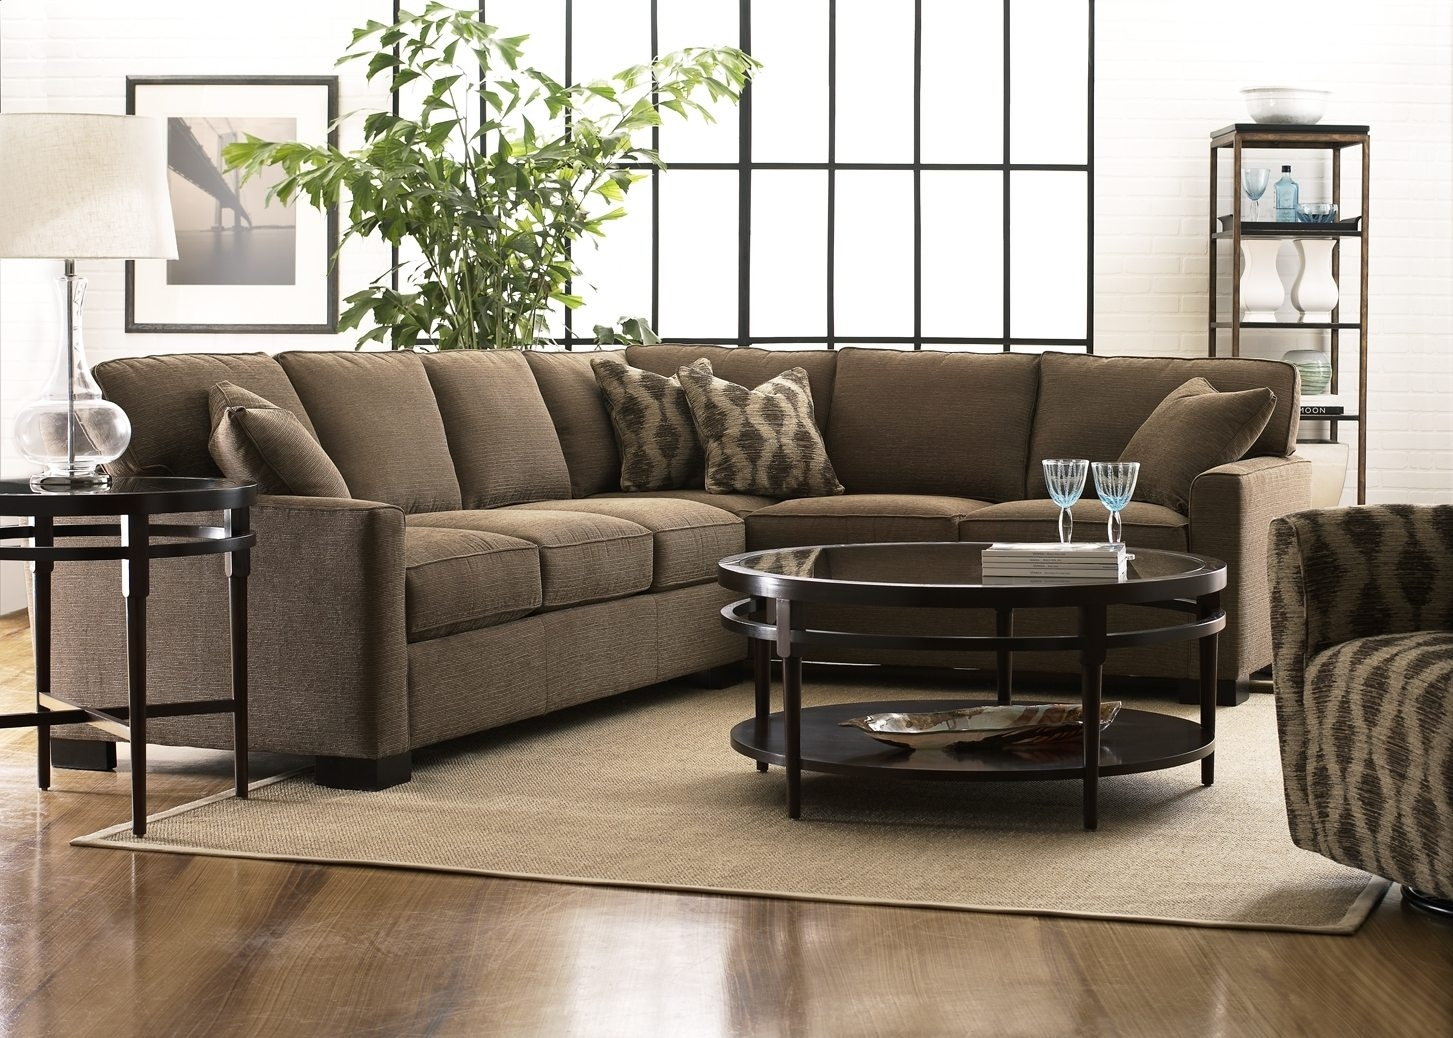 Sectional Sofas Edmonton Hotelsbacau Pertaining To Closeout Sectional Sofas (Image 8 of 15)